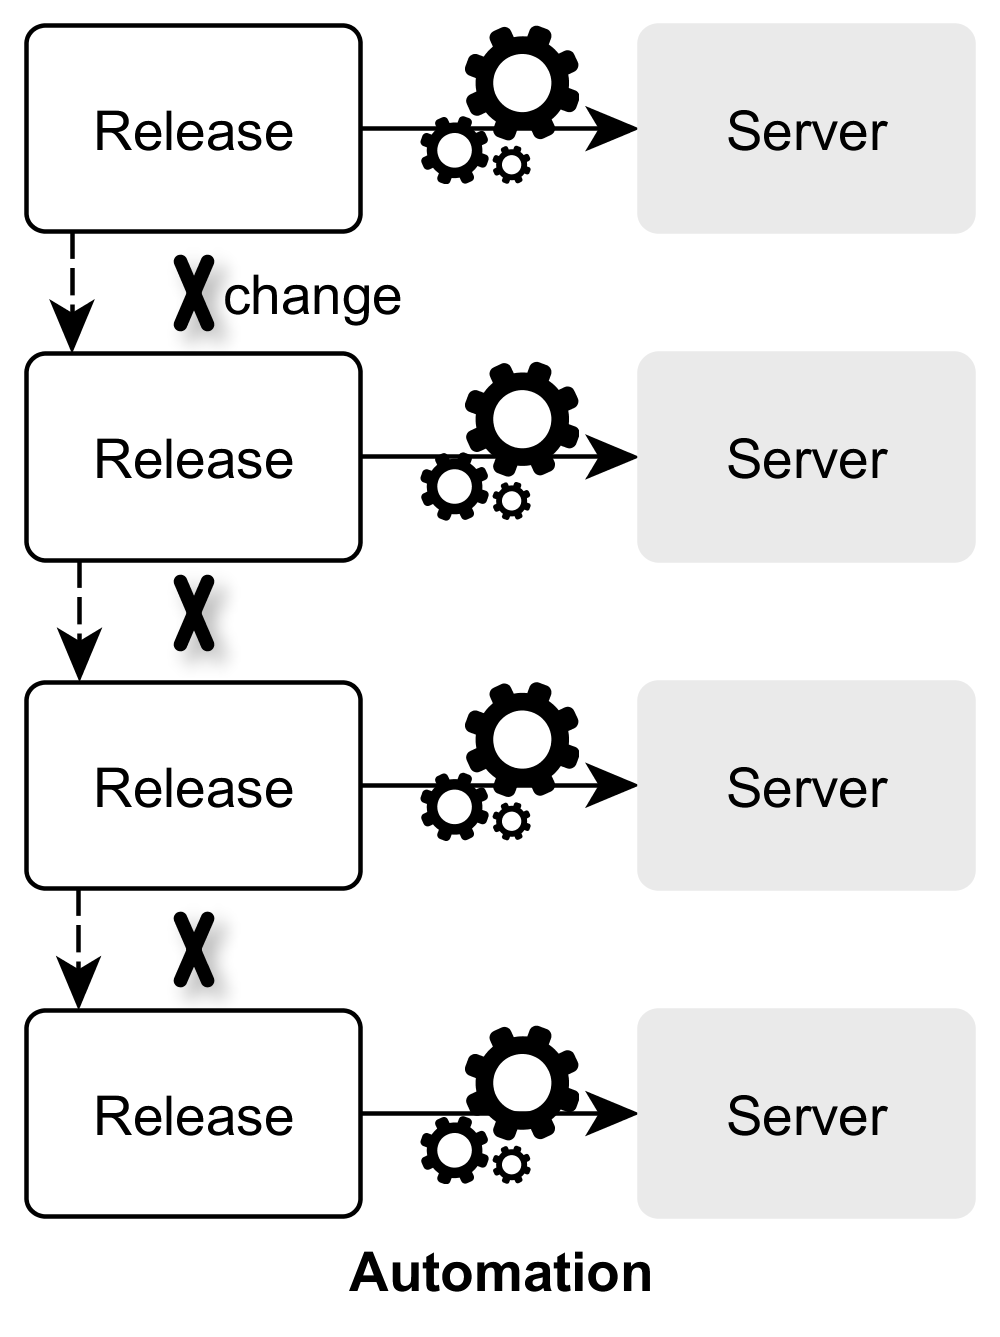 Continuous Delivery: Increased release frequency and automation of the release process.